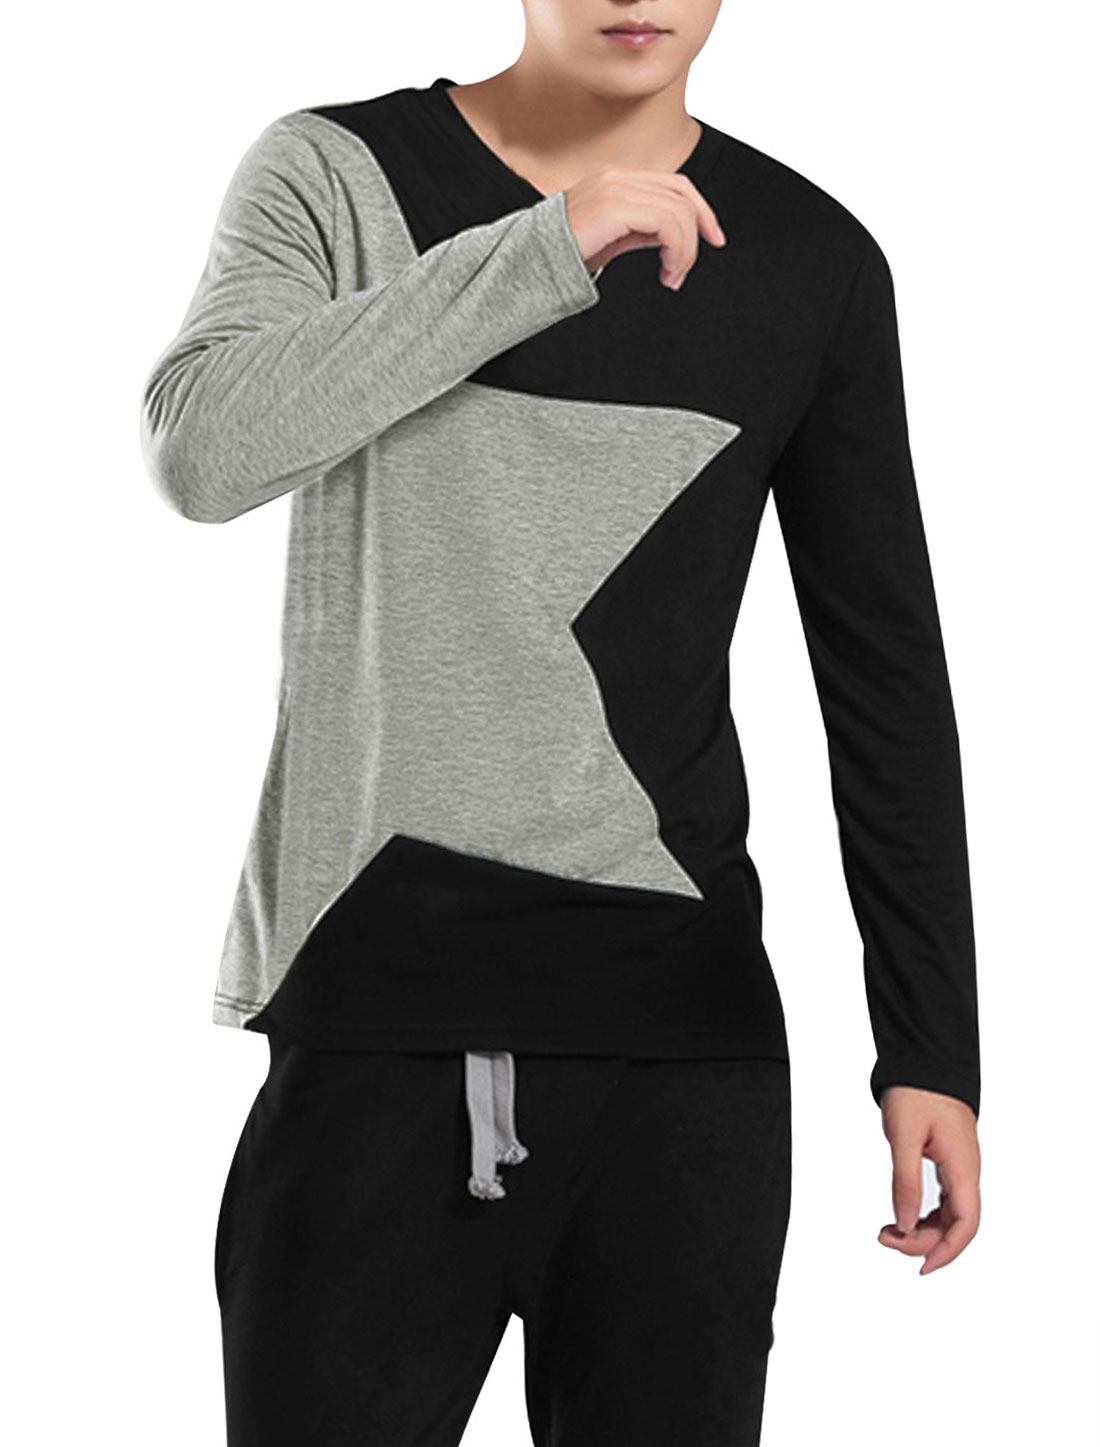 Autumn Slim Two-Tone Shirt for Men Black Light Gray M